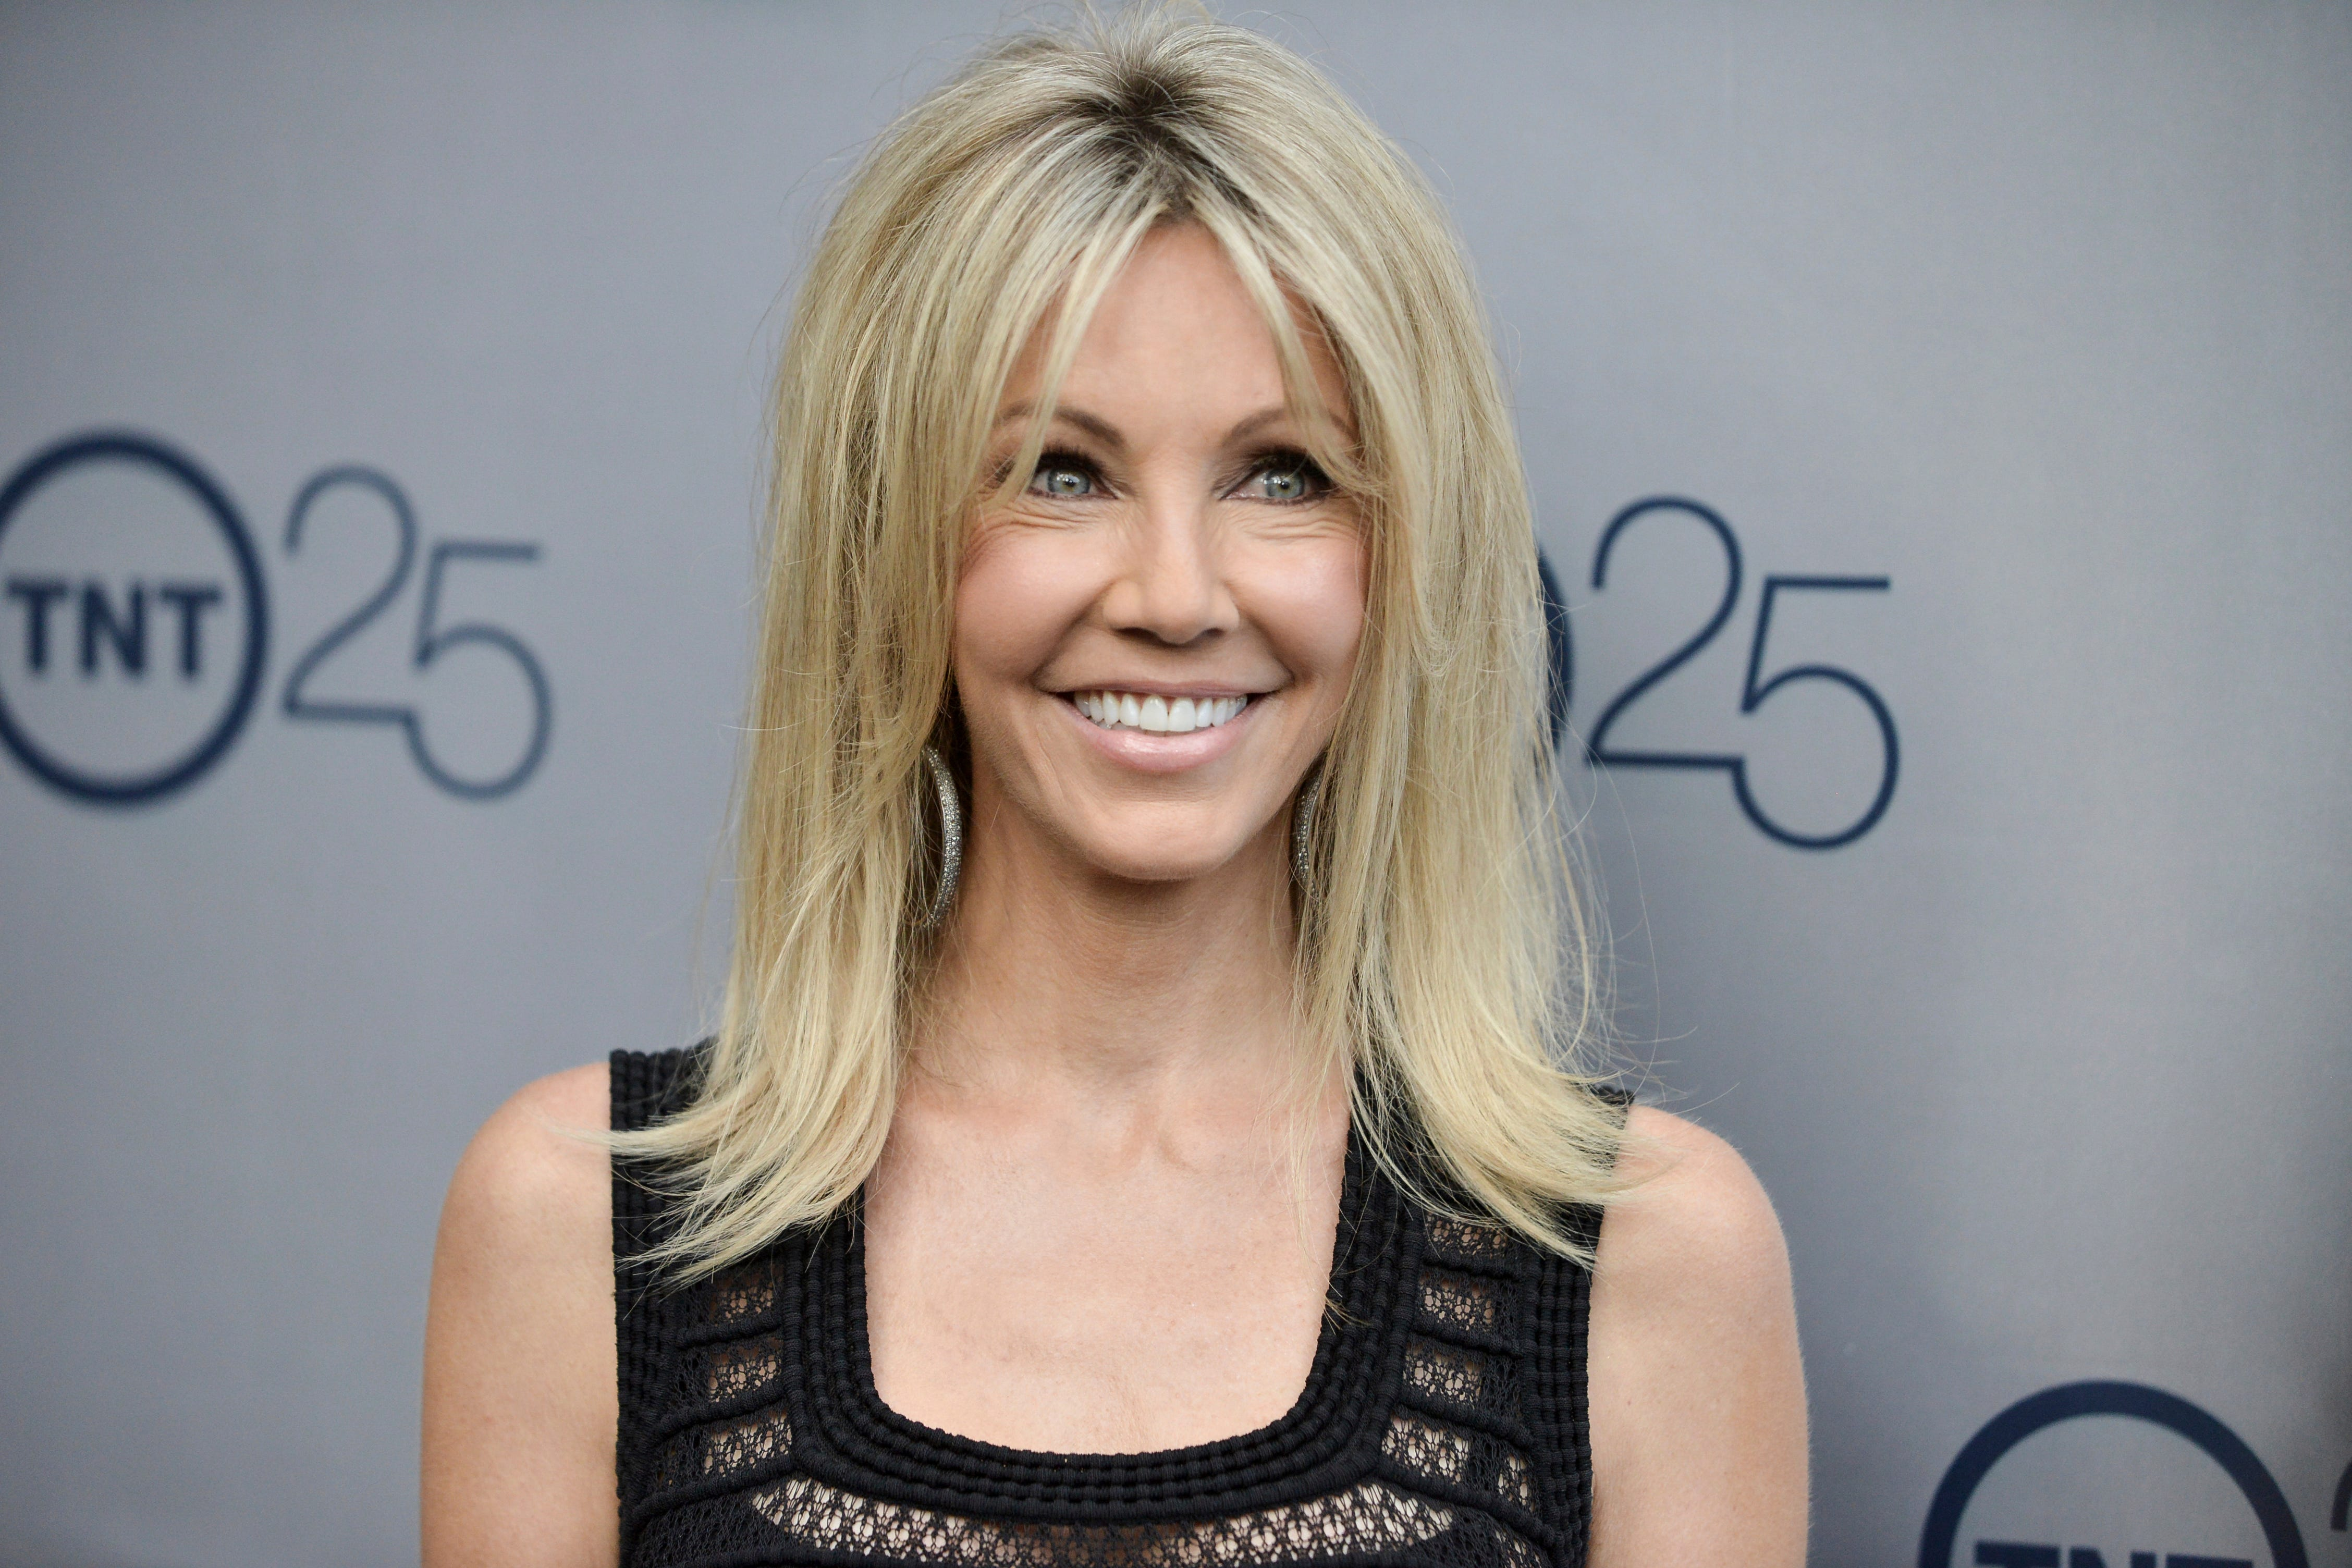 Images Heather Locklear nudes (52 photo), Tits, Fappening, Instagram, legs 2015